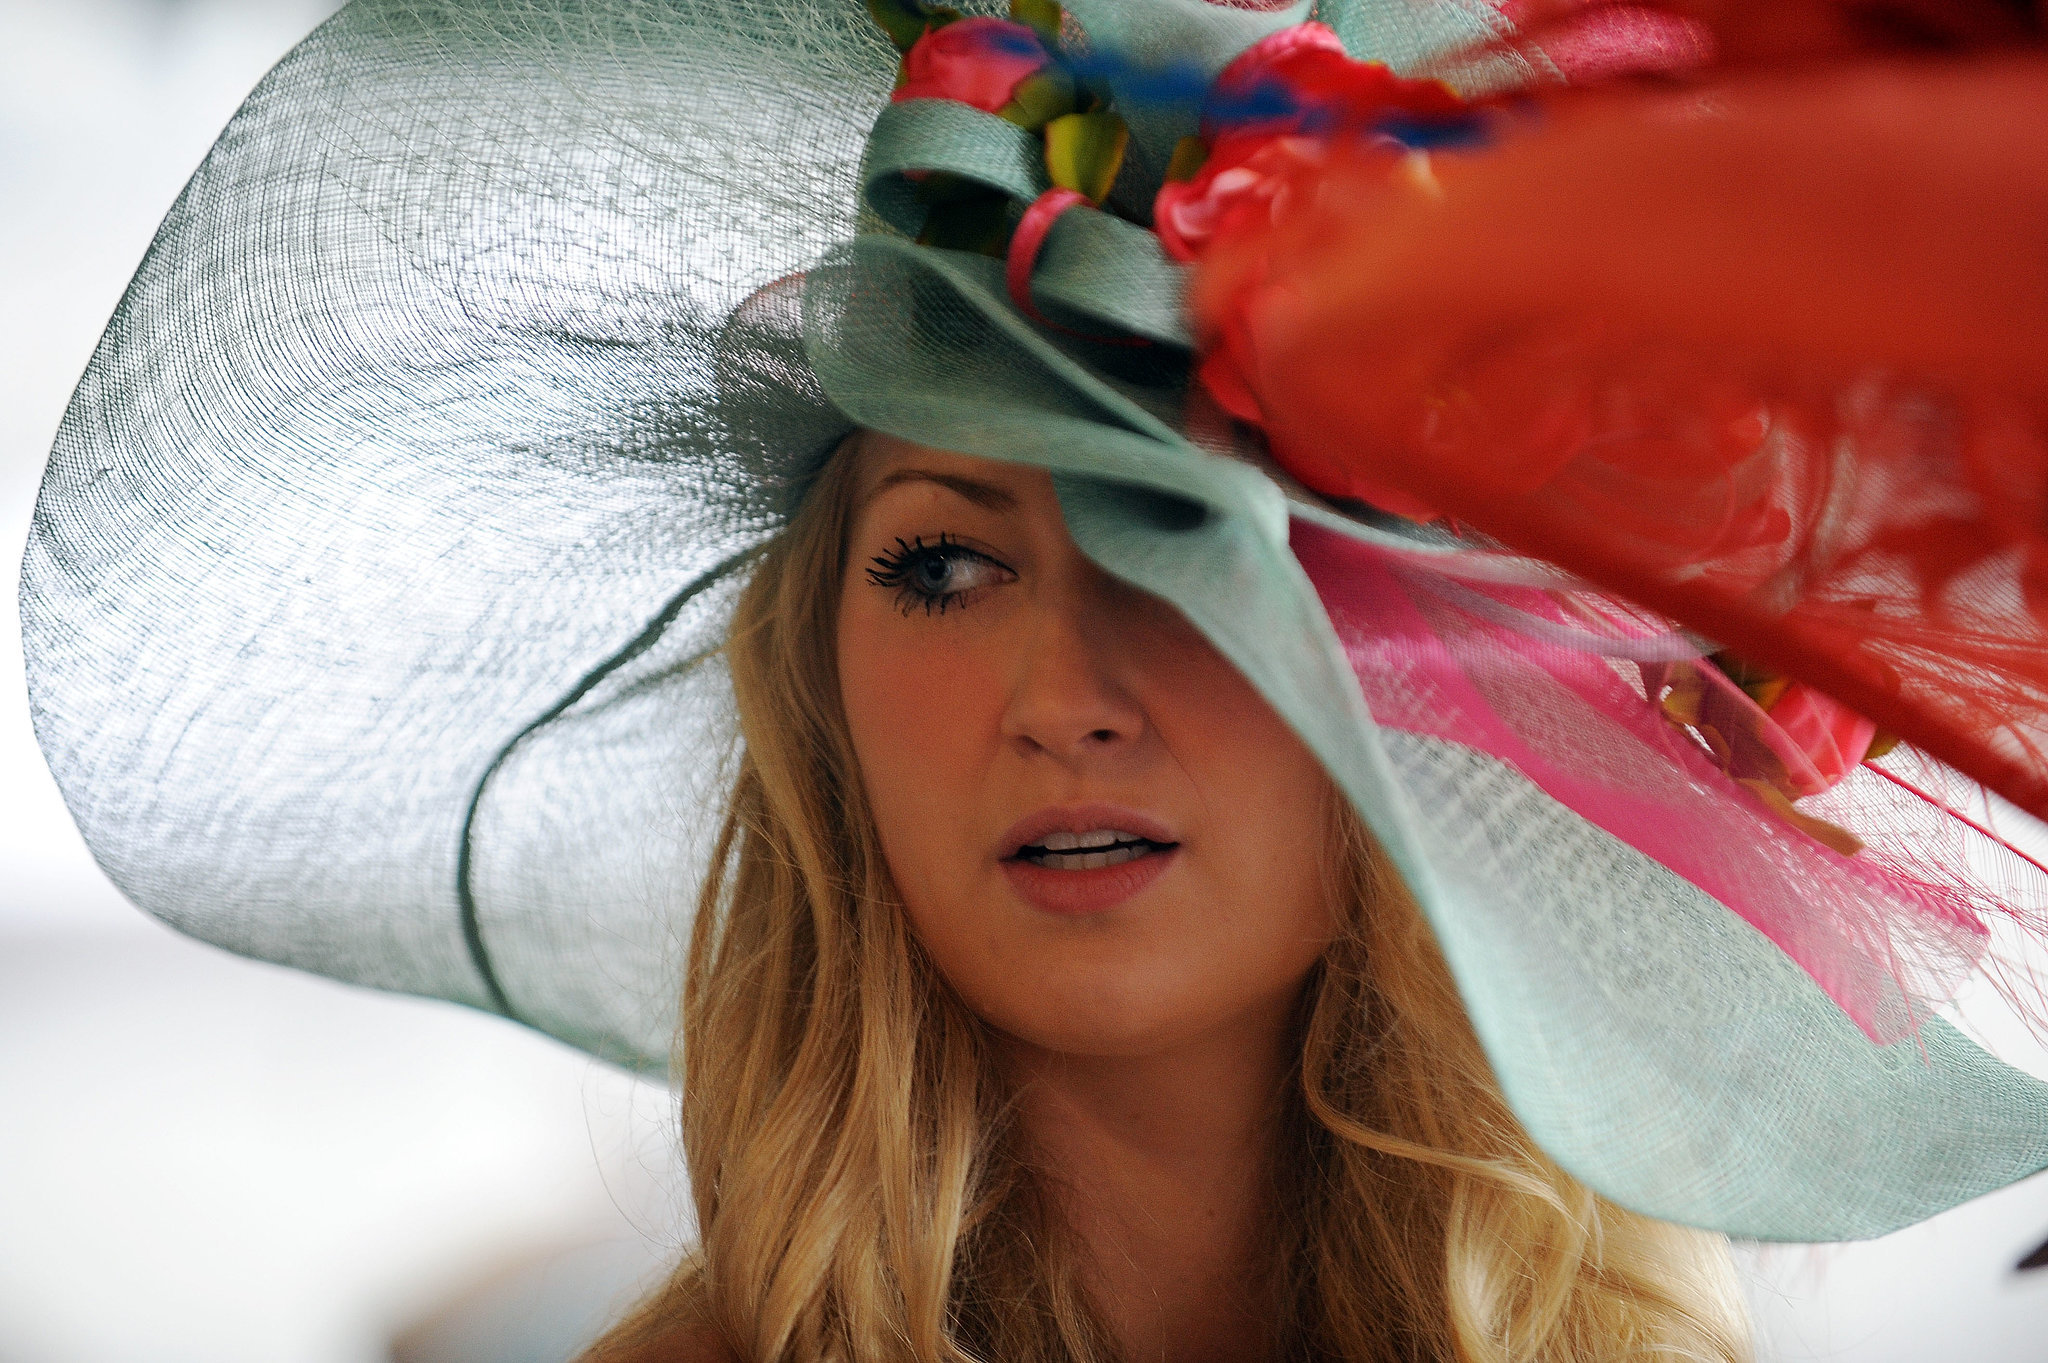 A floppy hat with all the bells and whistles adorned this woman in 2013.